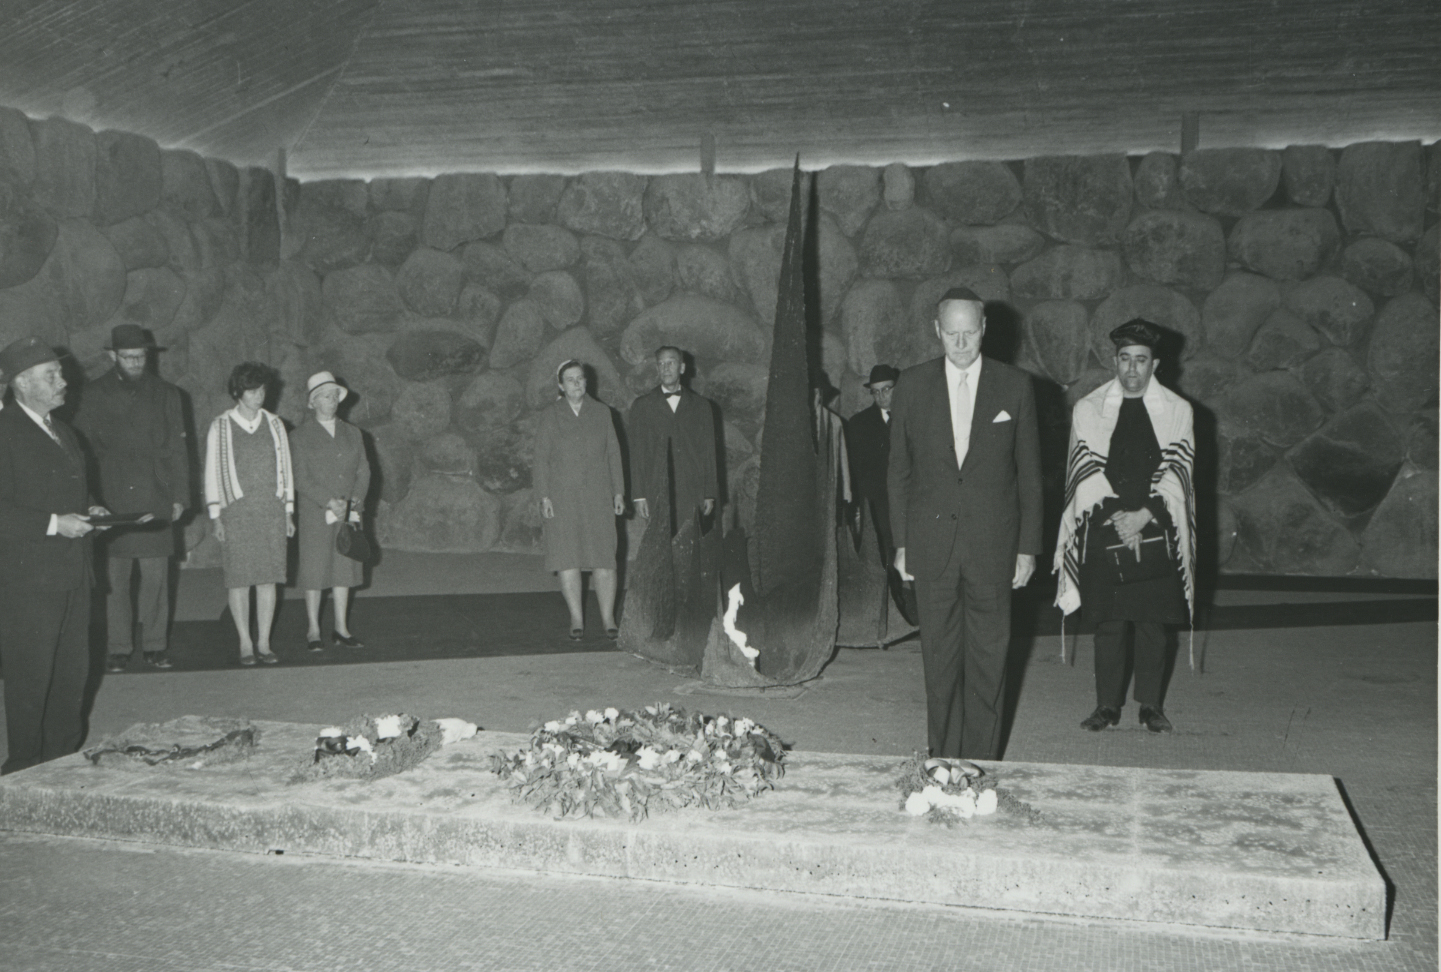 Ceremony in Honor of Ingebjorg Sletten in the Hall of Remembrance. Yad Vashem, 21.03.1967